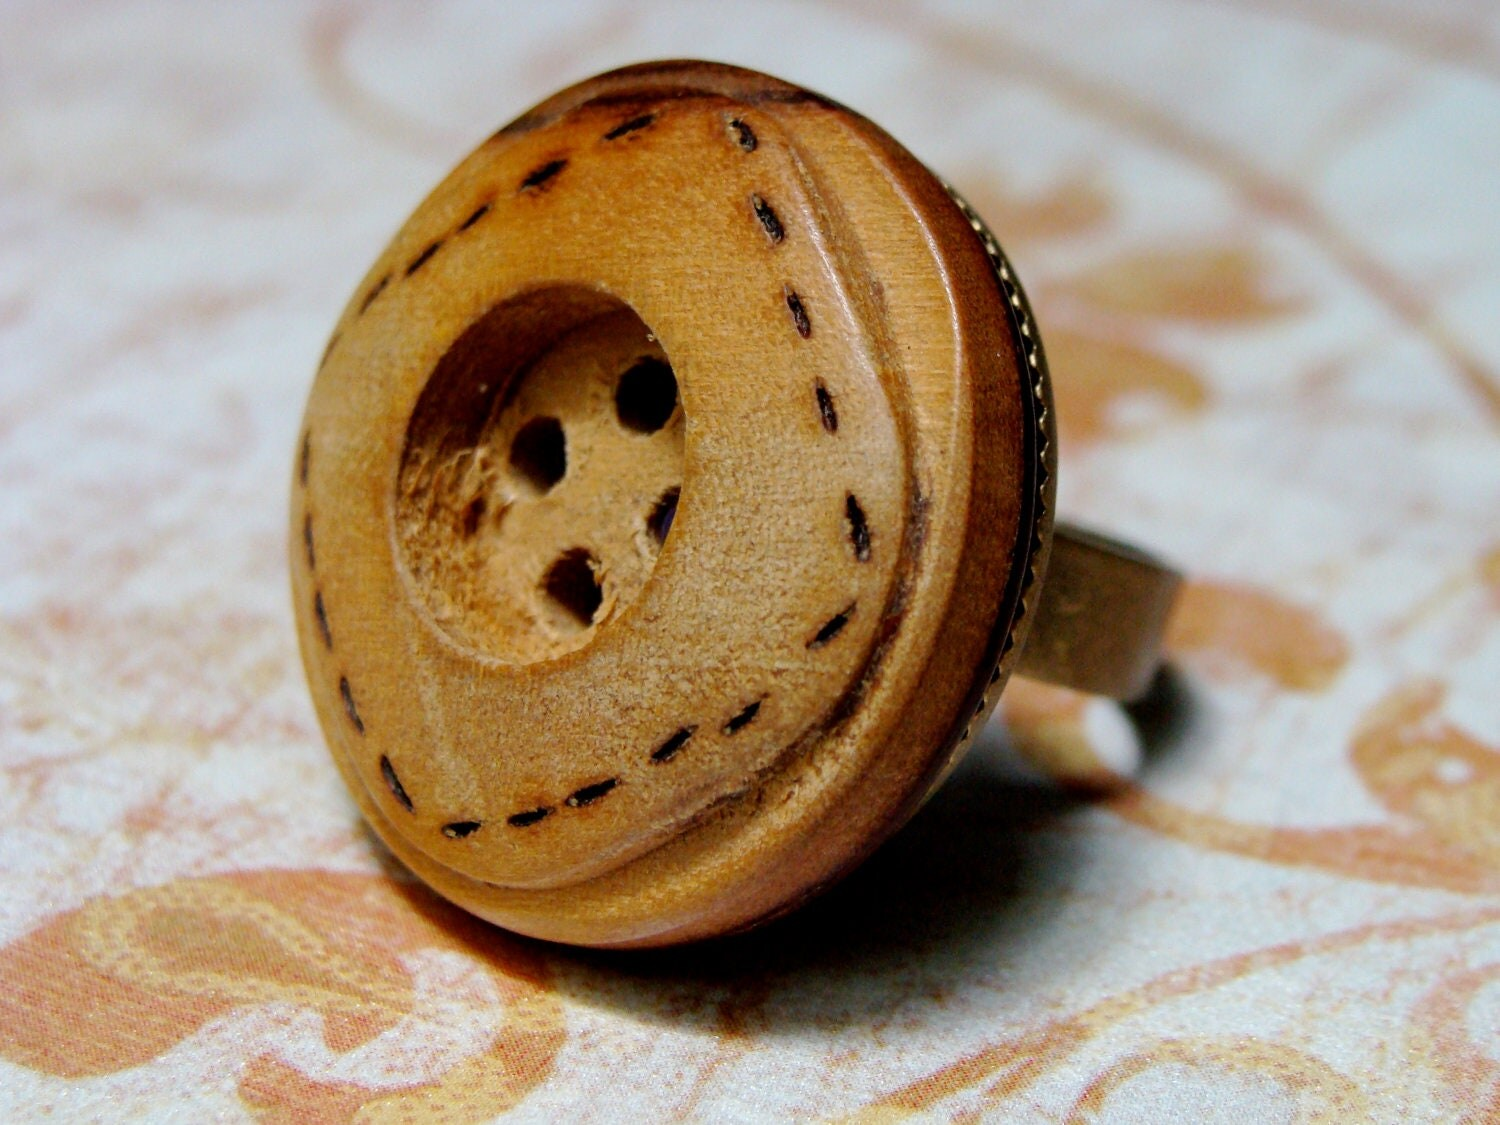 burned stitch marks on wooden button jewelry for fall accessory